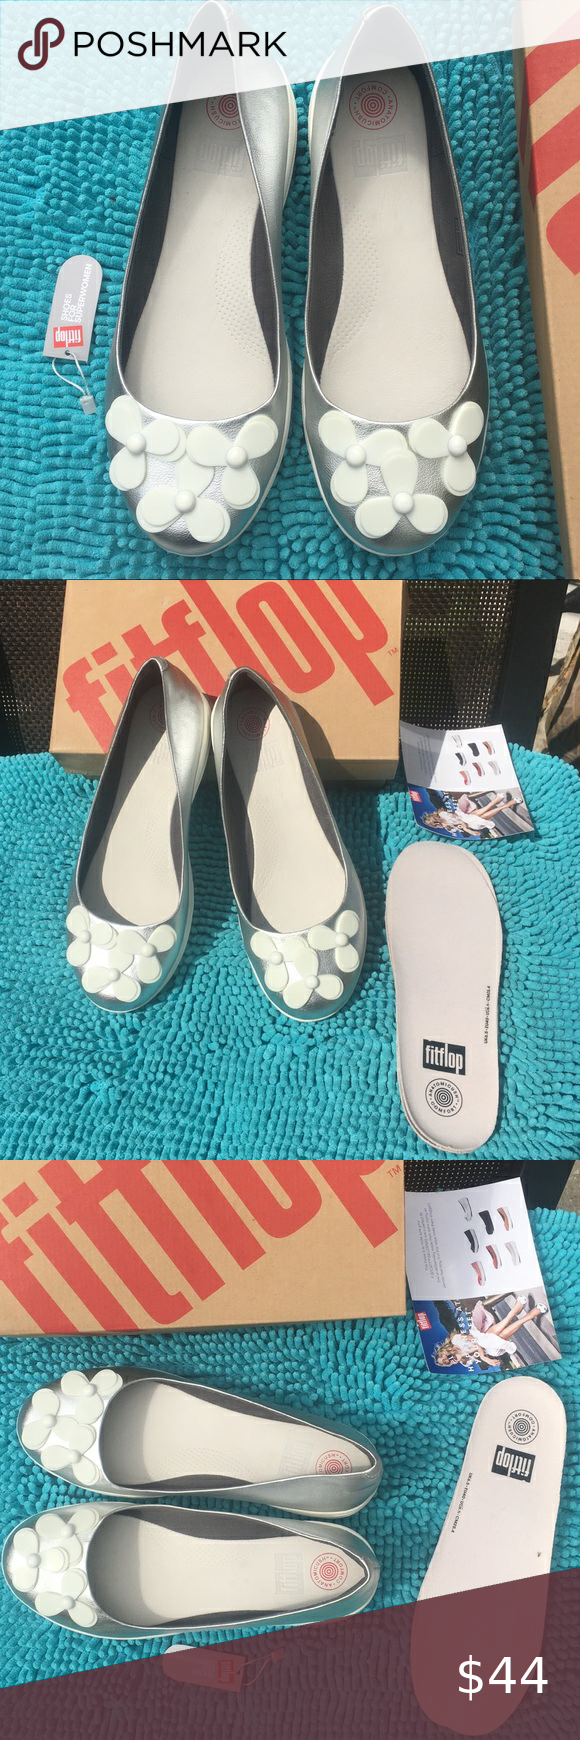 NEw Fitflop F-Sporty Ballerina Flats in